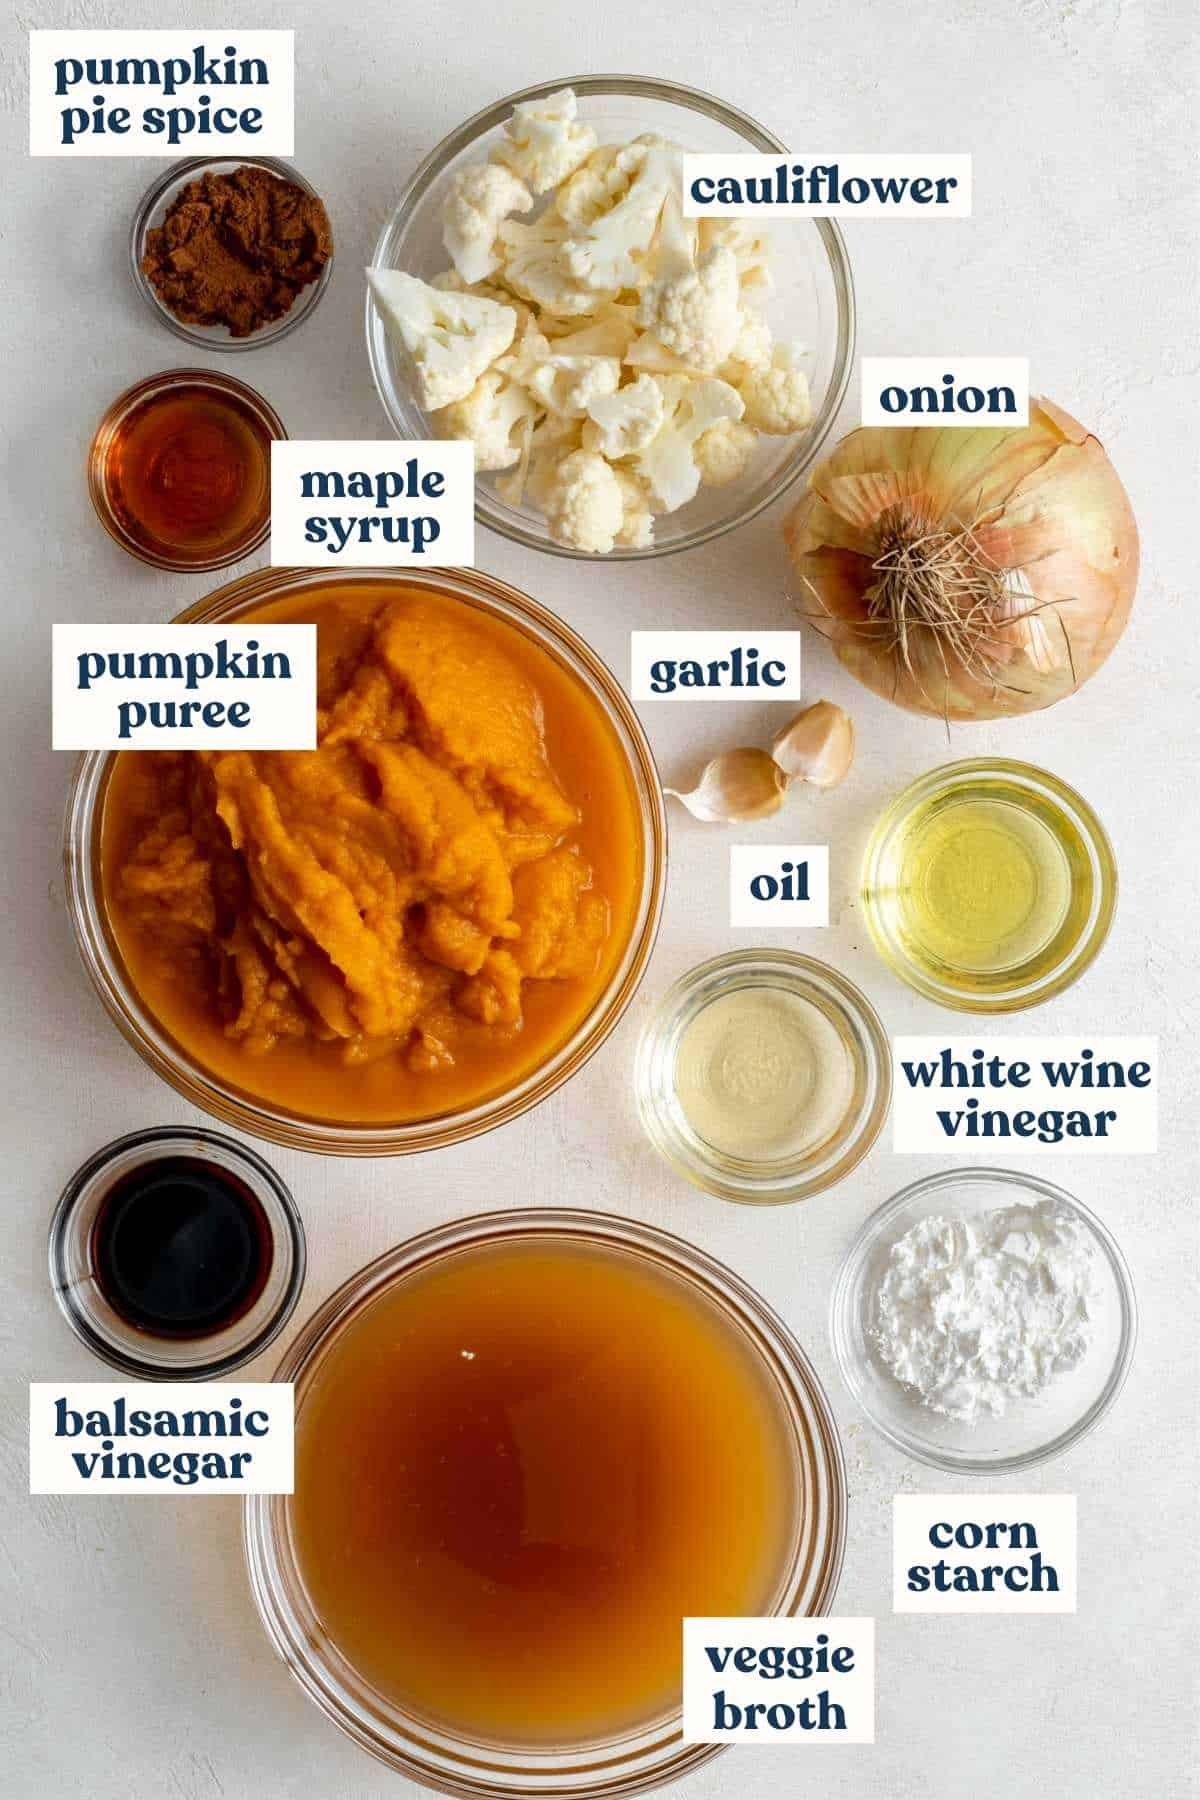 Soup ingredients pre-measured into bowls and labeled by ingredient.